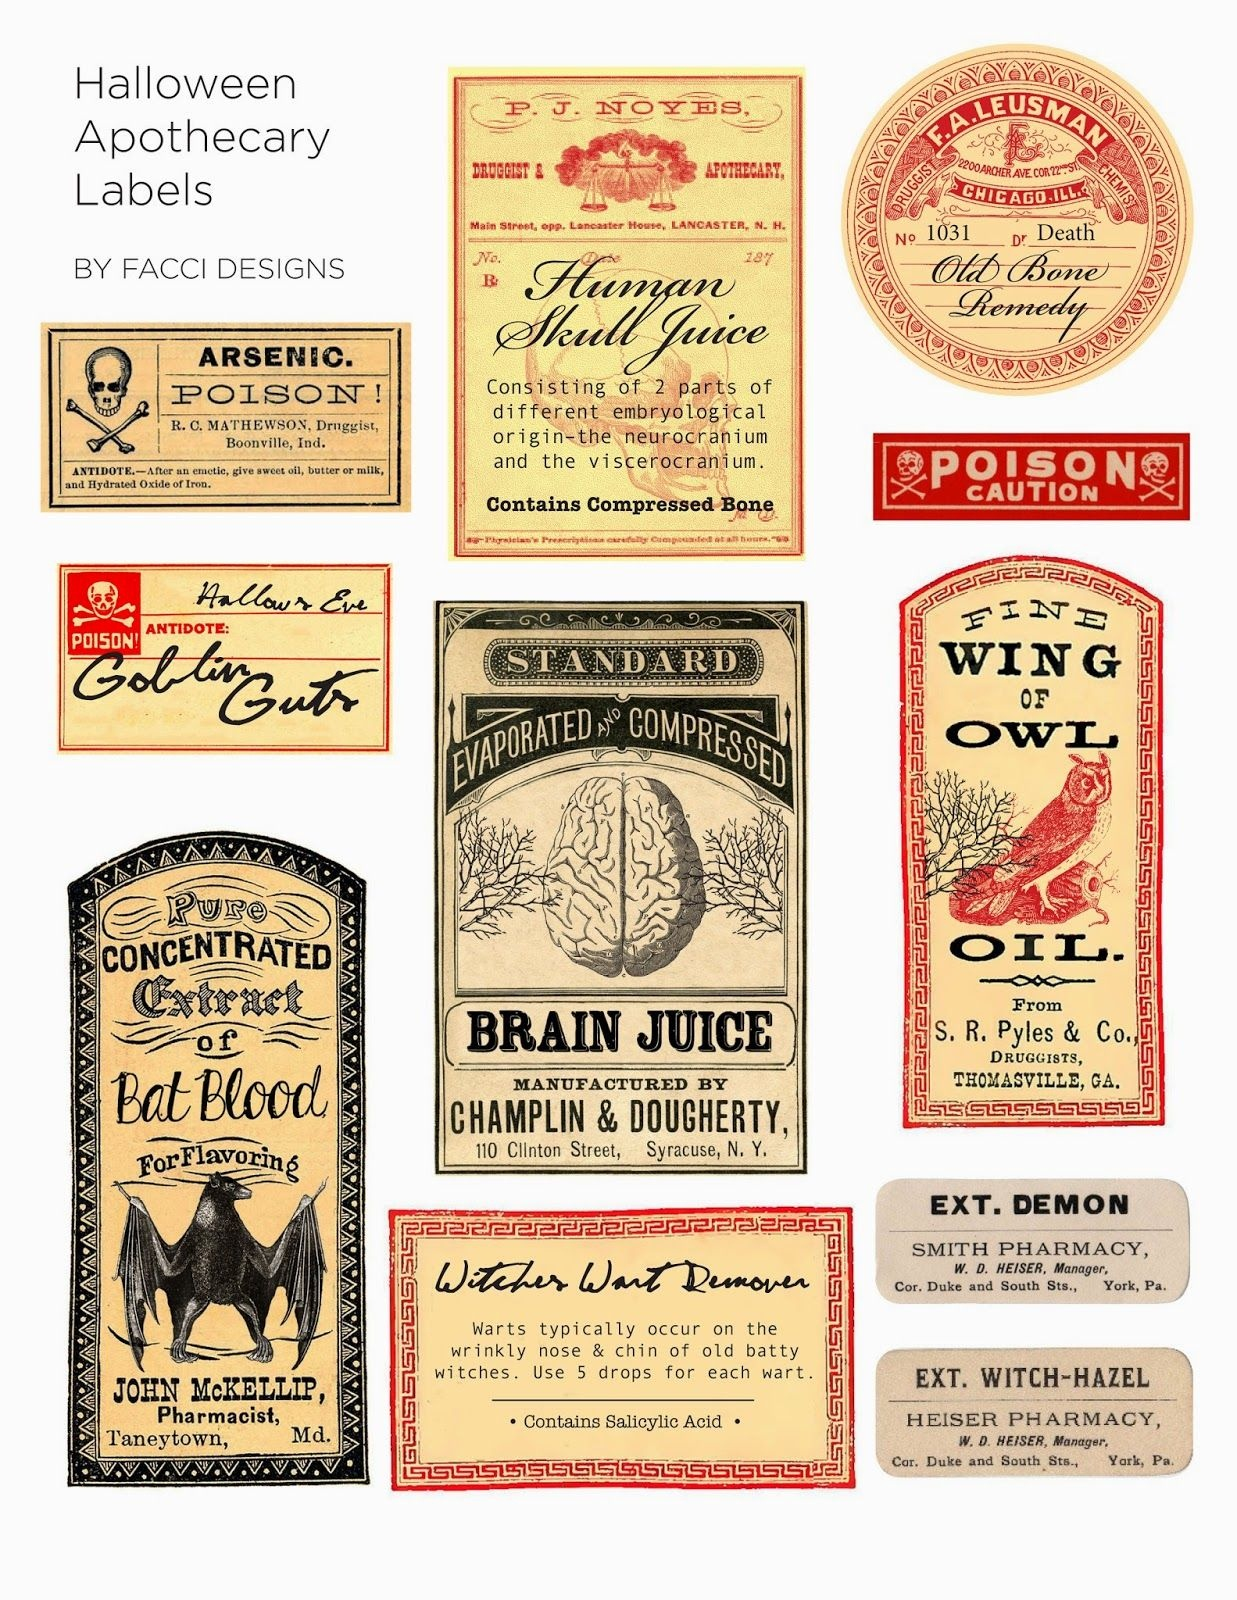 Halloween Love: Spooky Apothecary Labels Free Printable | Halloween - Free Printable Apothecary Jar Labels